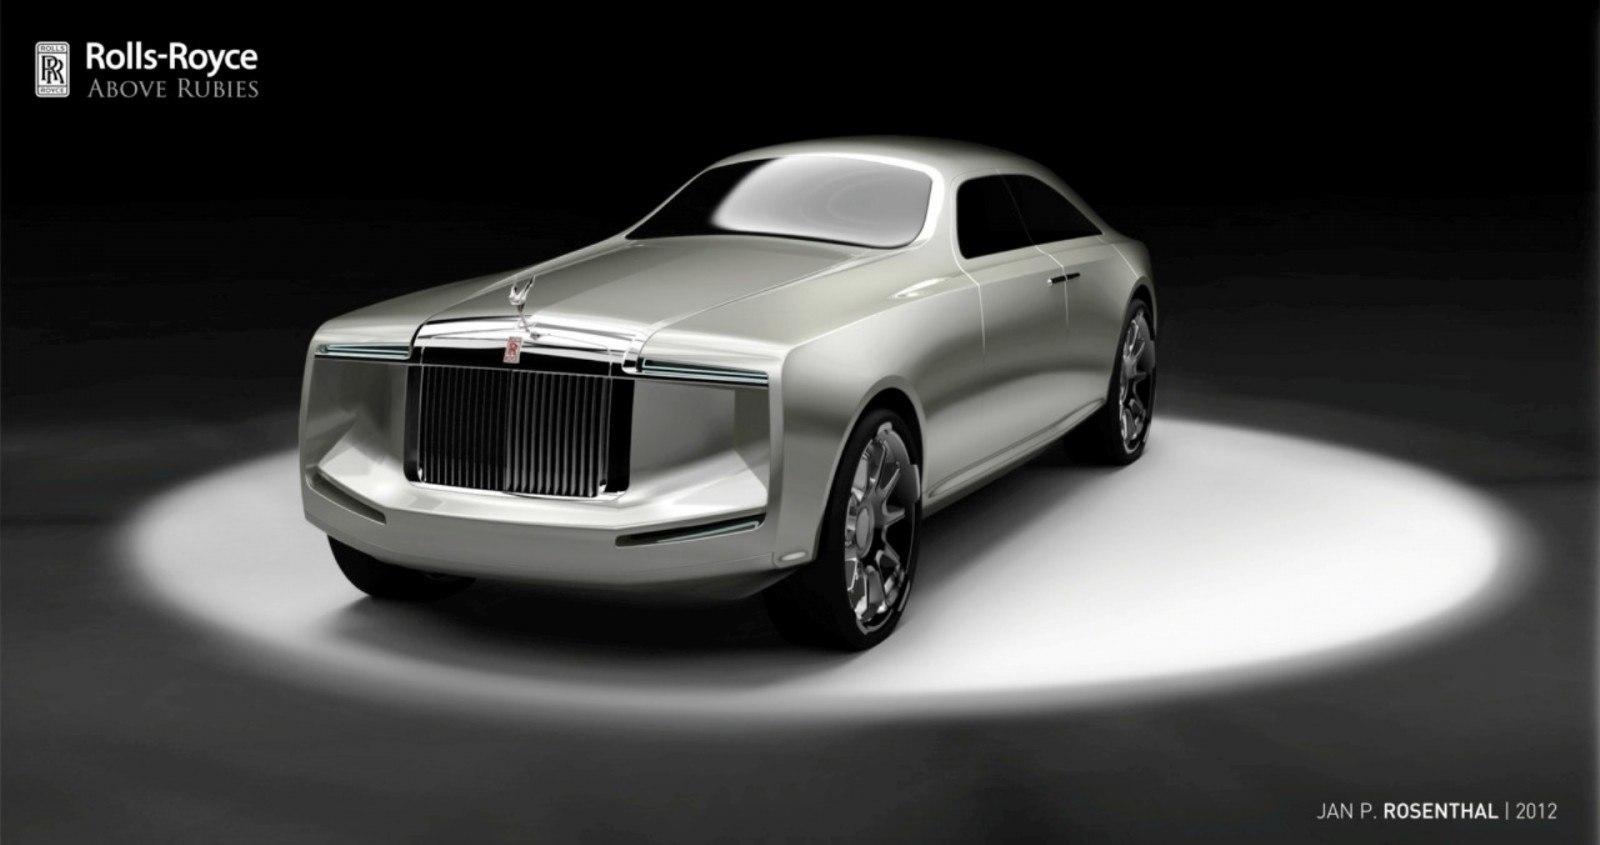 Design Talent Showcase - Jan Rosenthal's 2023 Rolls-Royce Concept Wins Official RCA Contest 10